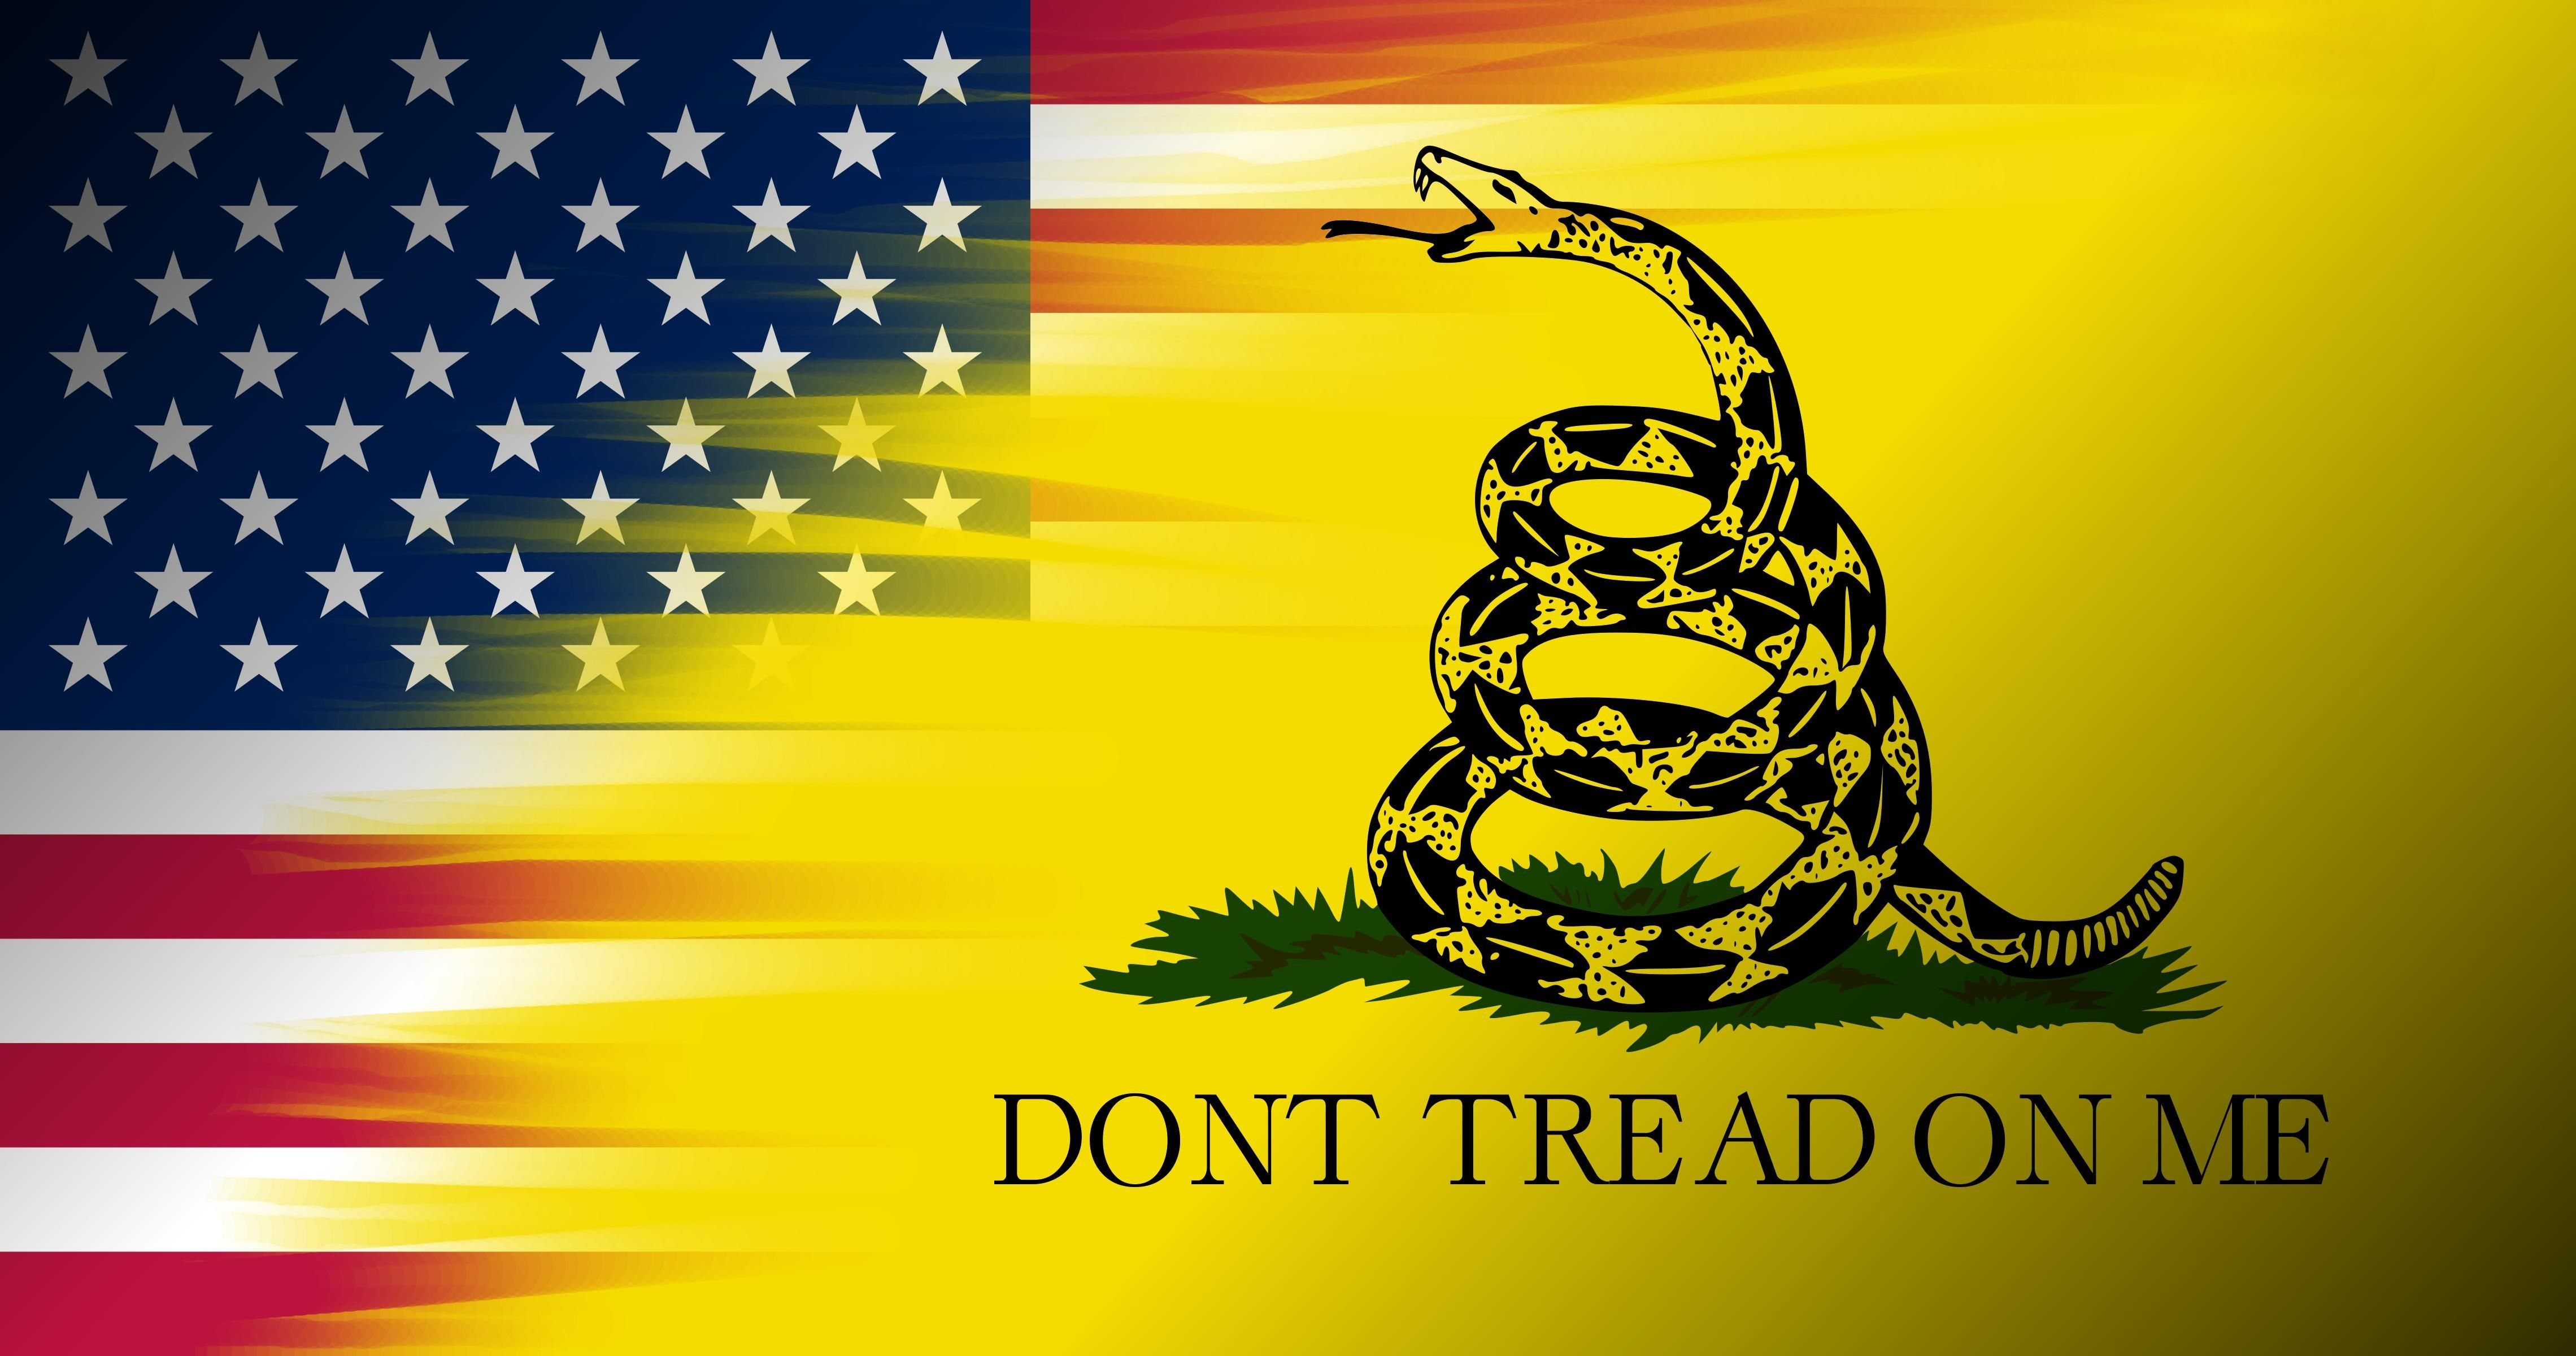 Don T Tread On Me Flag Wallpapers Top Free Don T Tread On Me